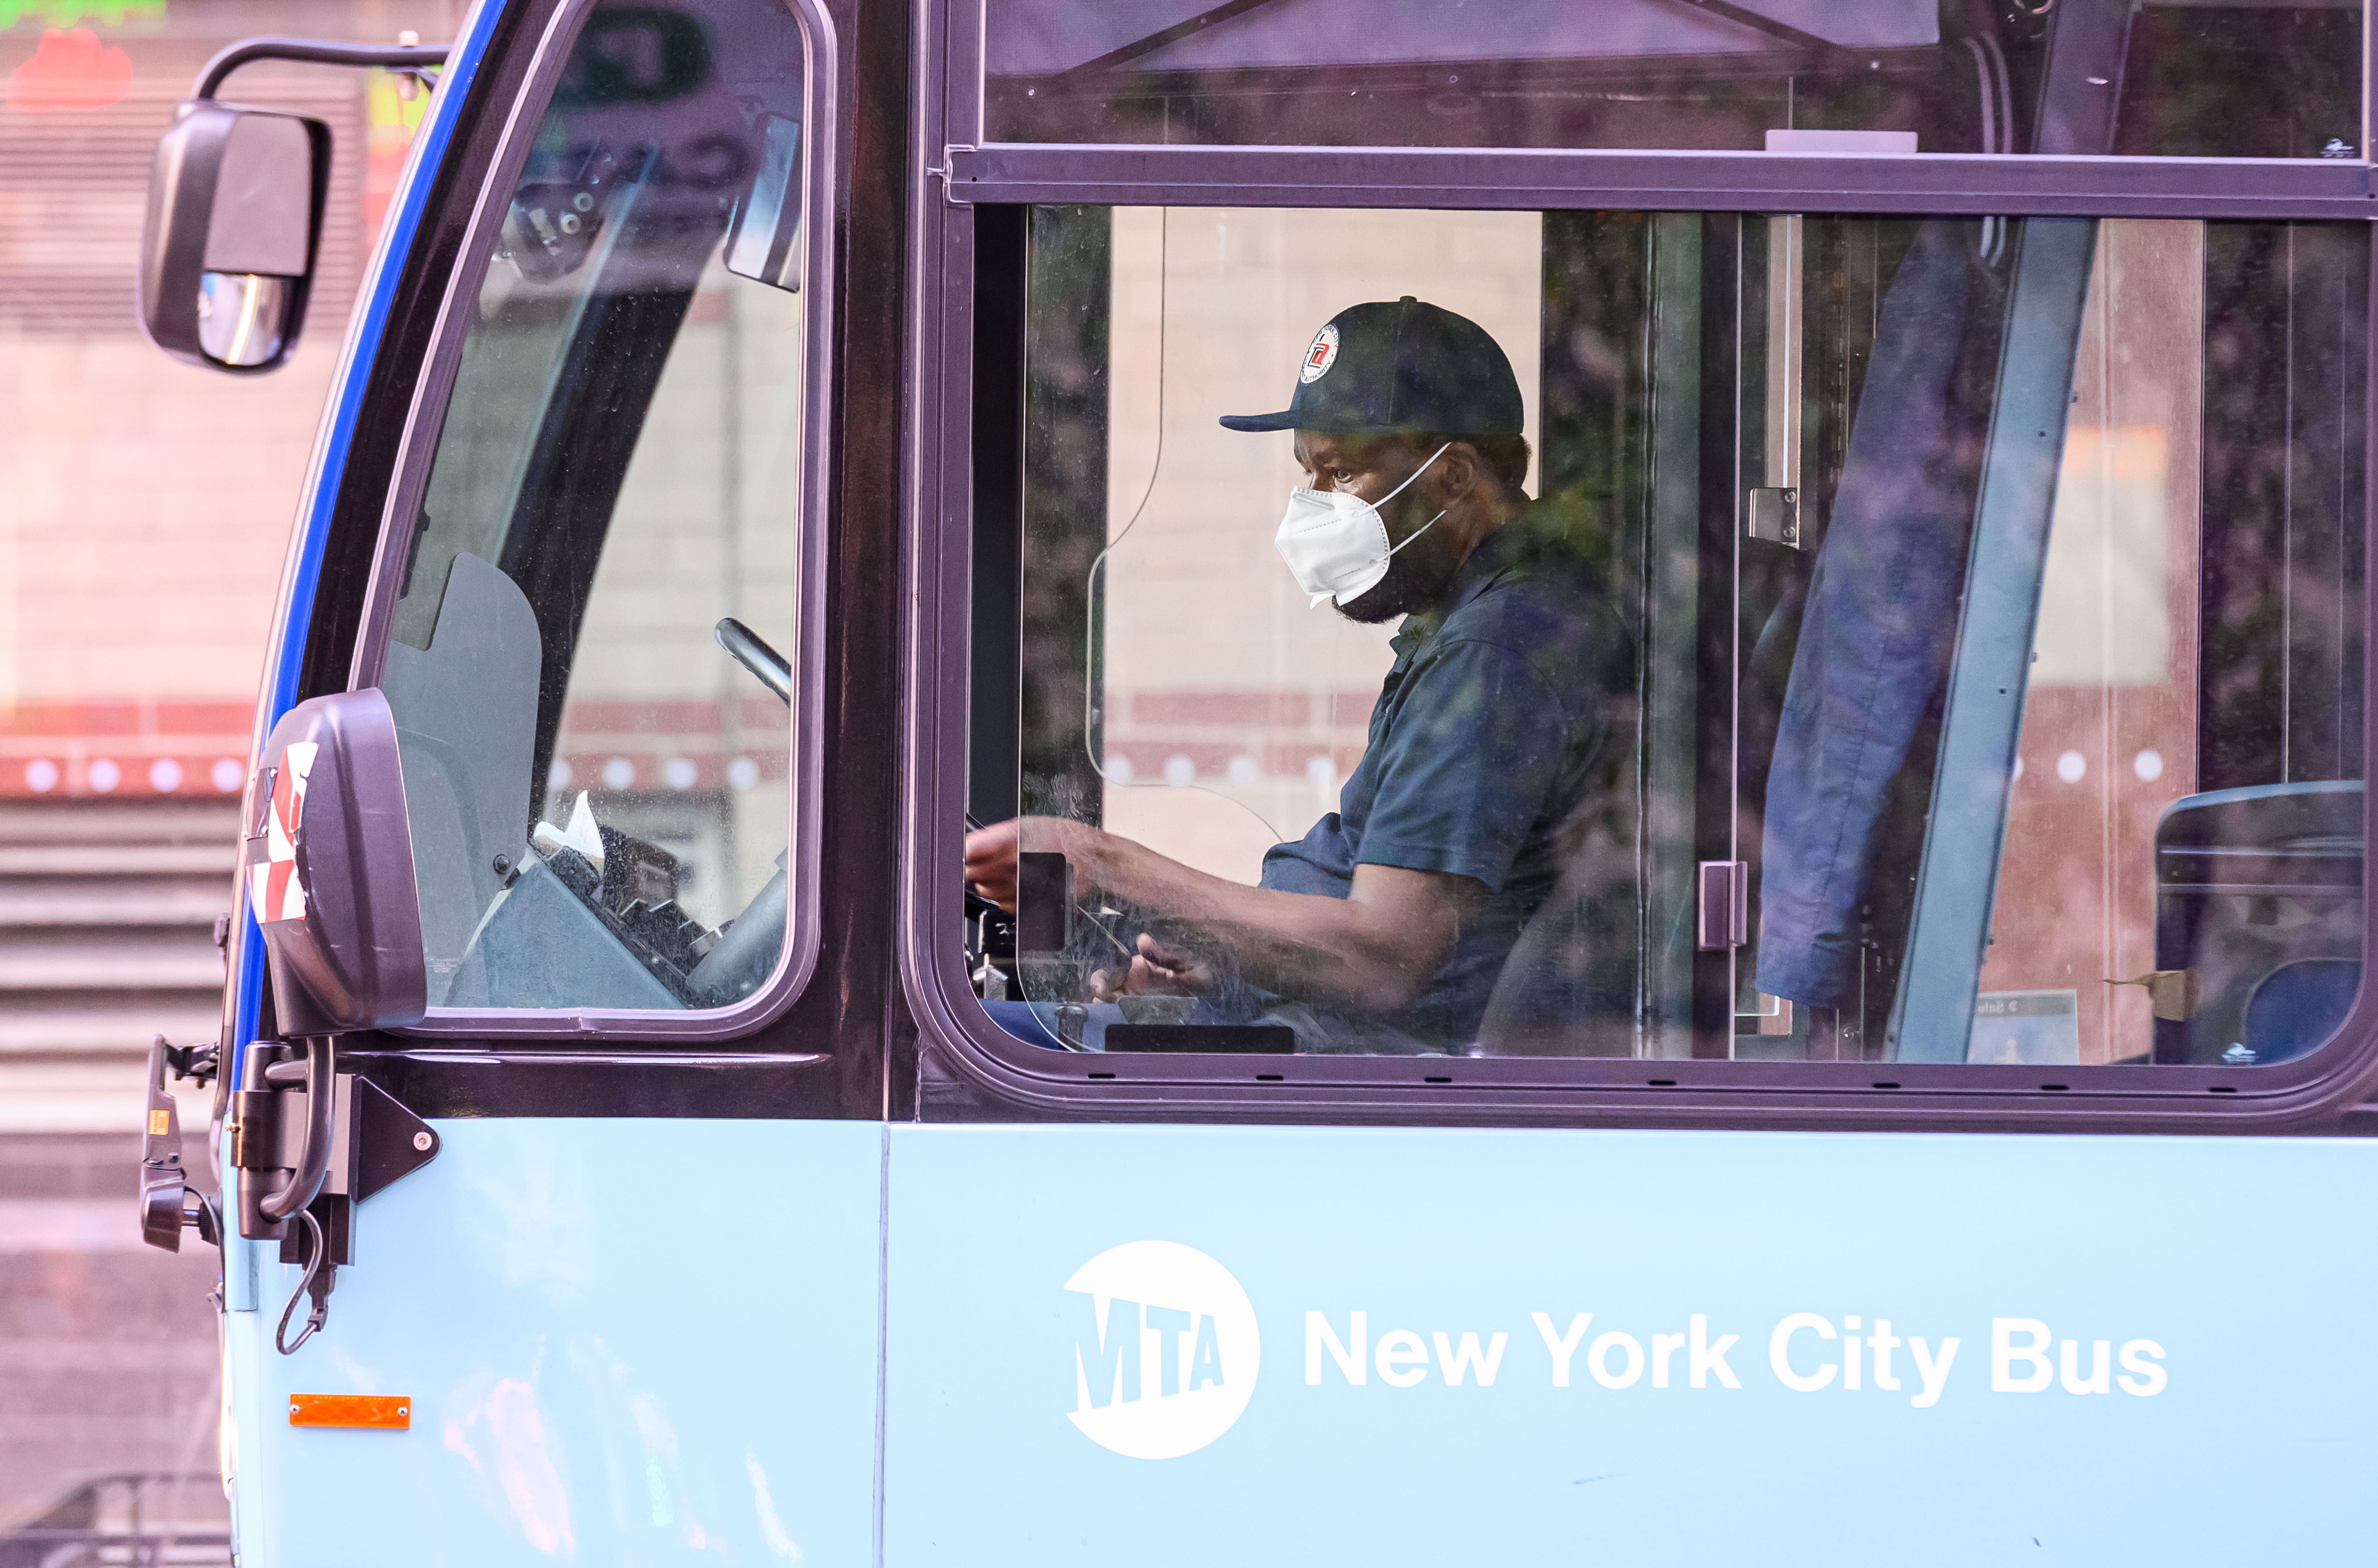 A Black man driving a bus.